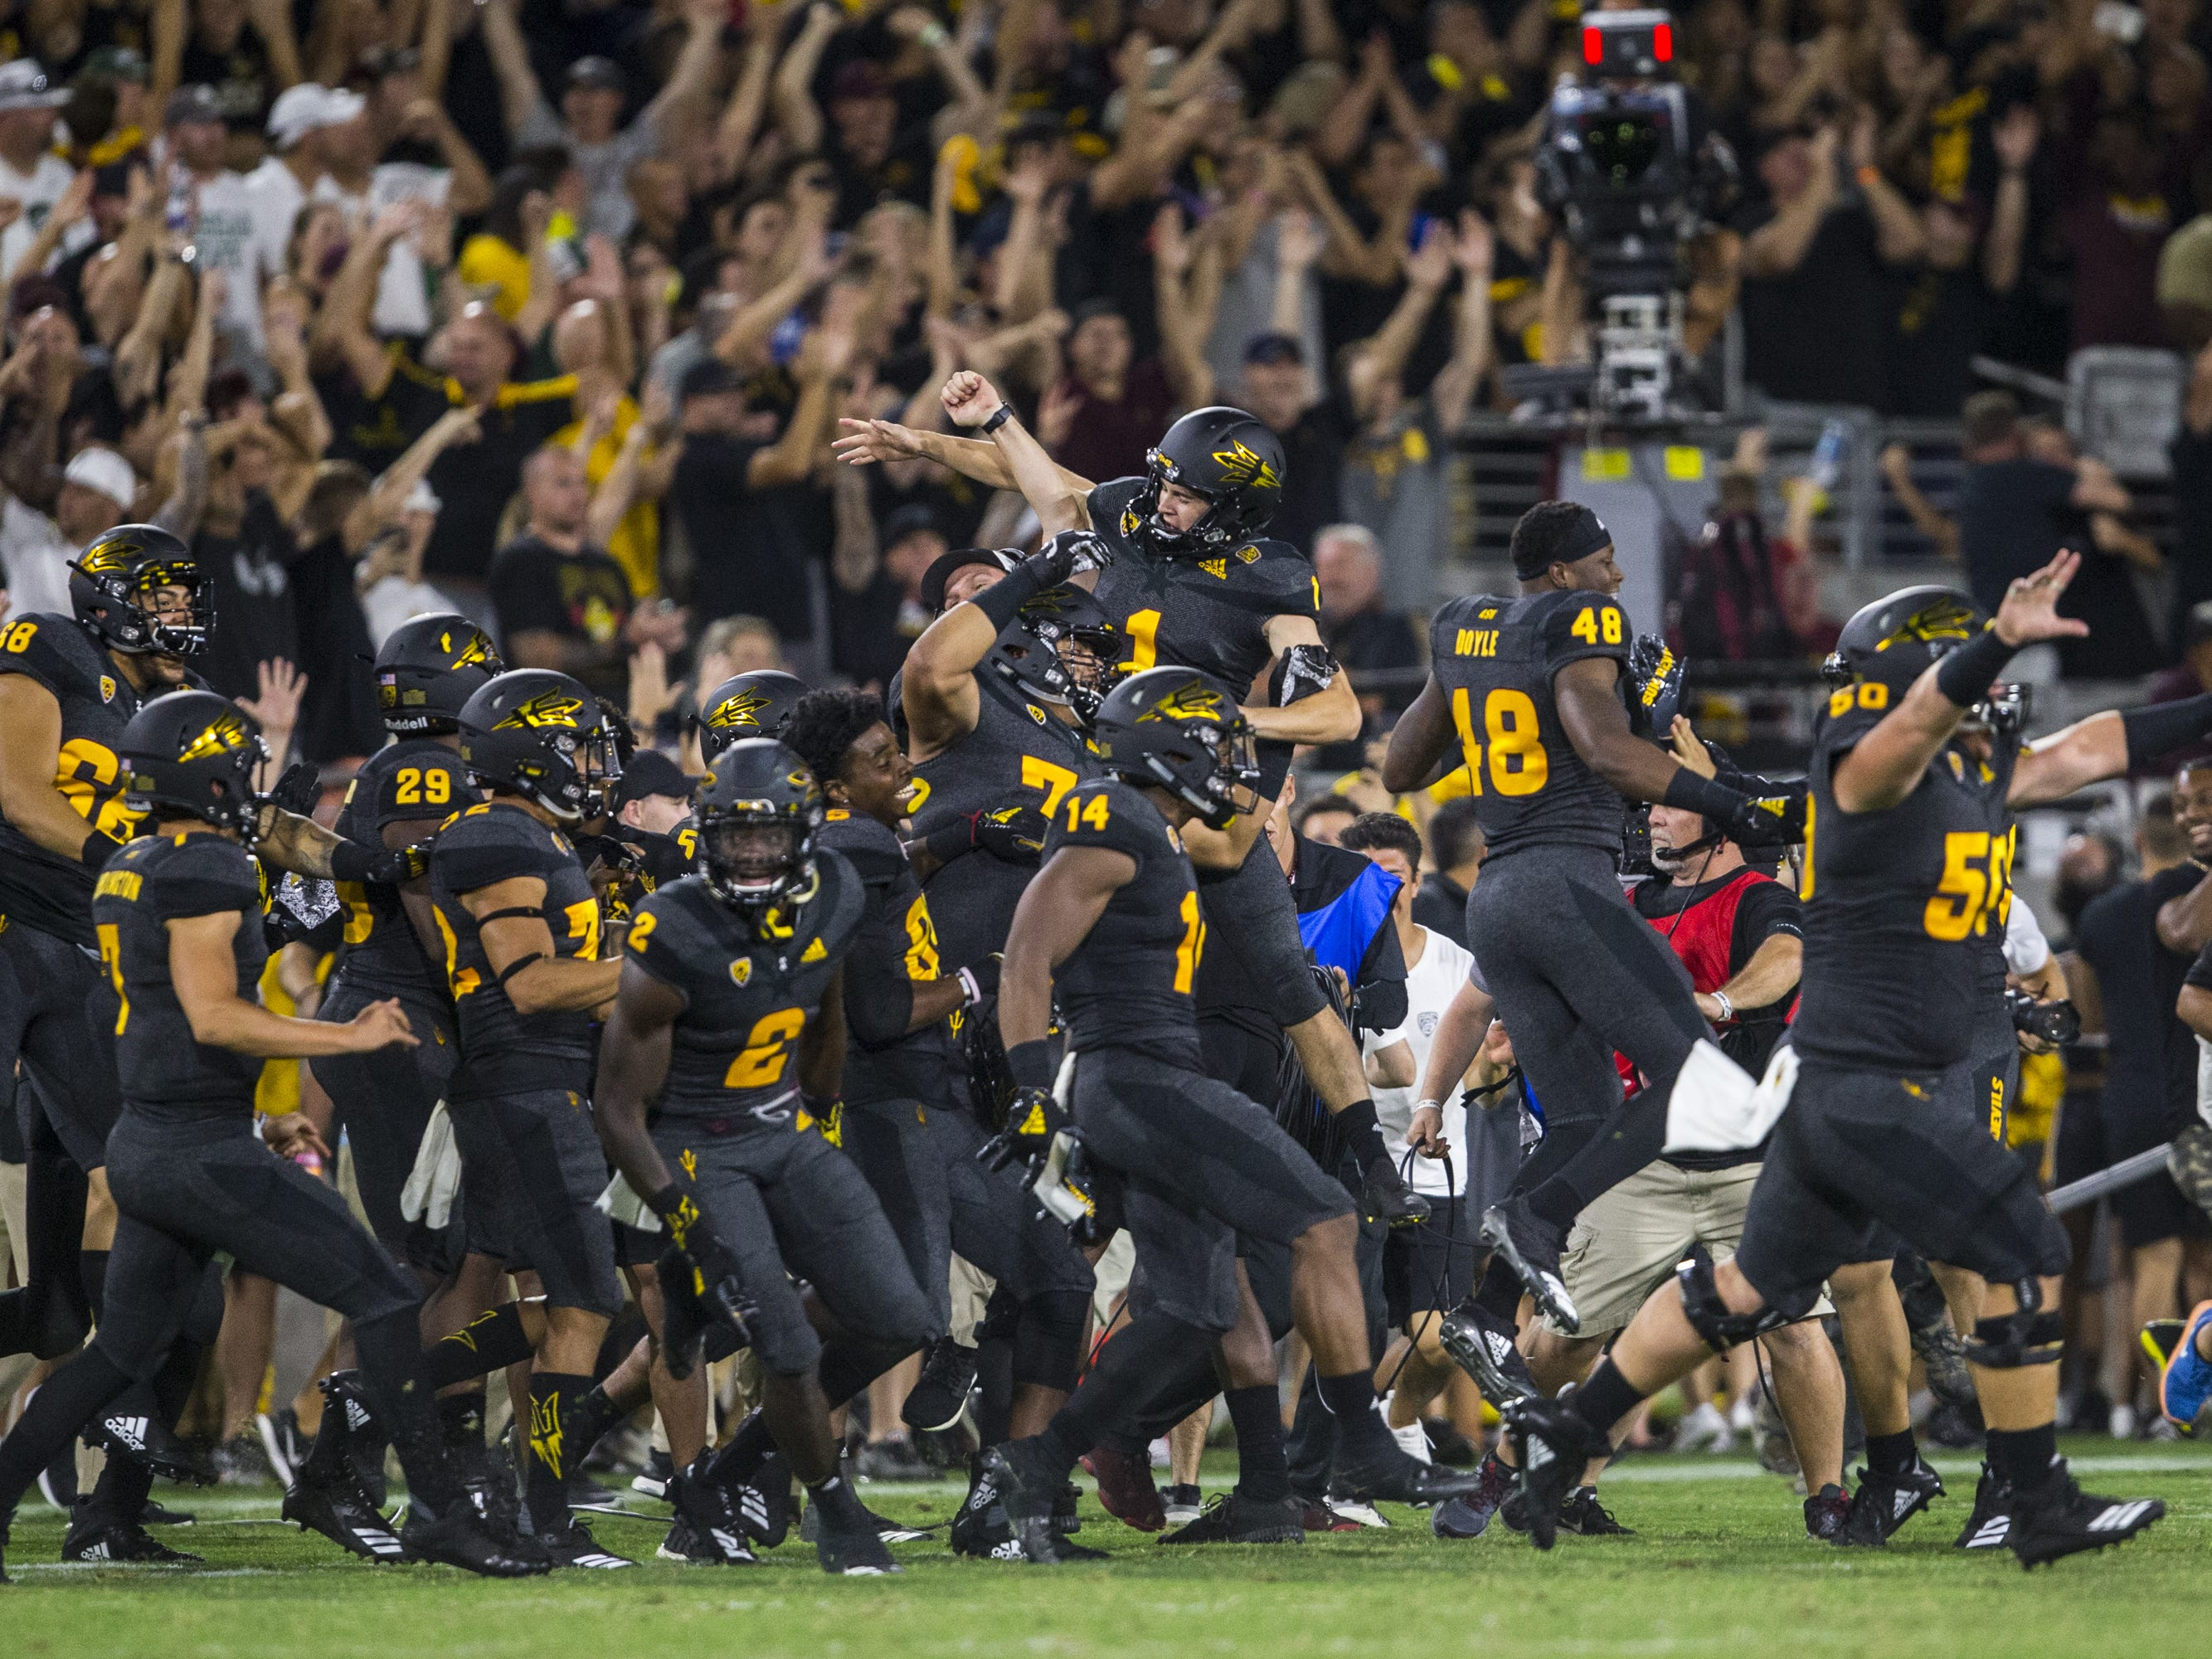 Arizona State celebrates after Brandon Ruiz kicked the game-winning field goal against Michigan State in the 4th quarter on Saturday, Sept. 8, 2018, at Sun Devil Stadium in Tempe, Ariz. Arizona State won, 16-13.